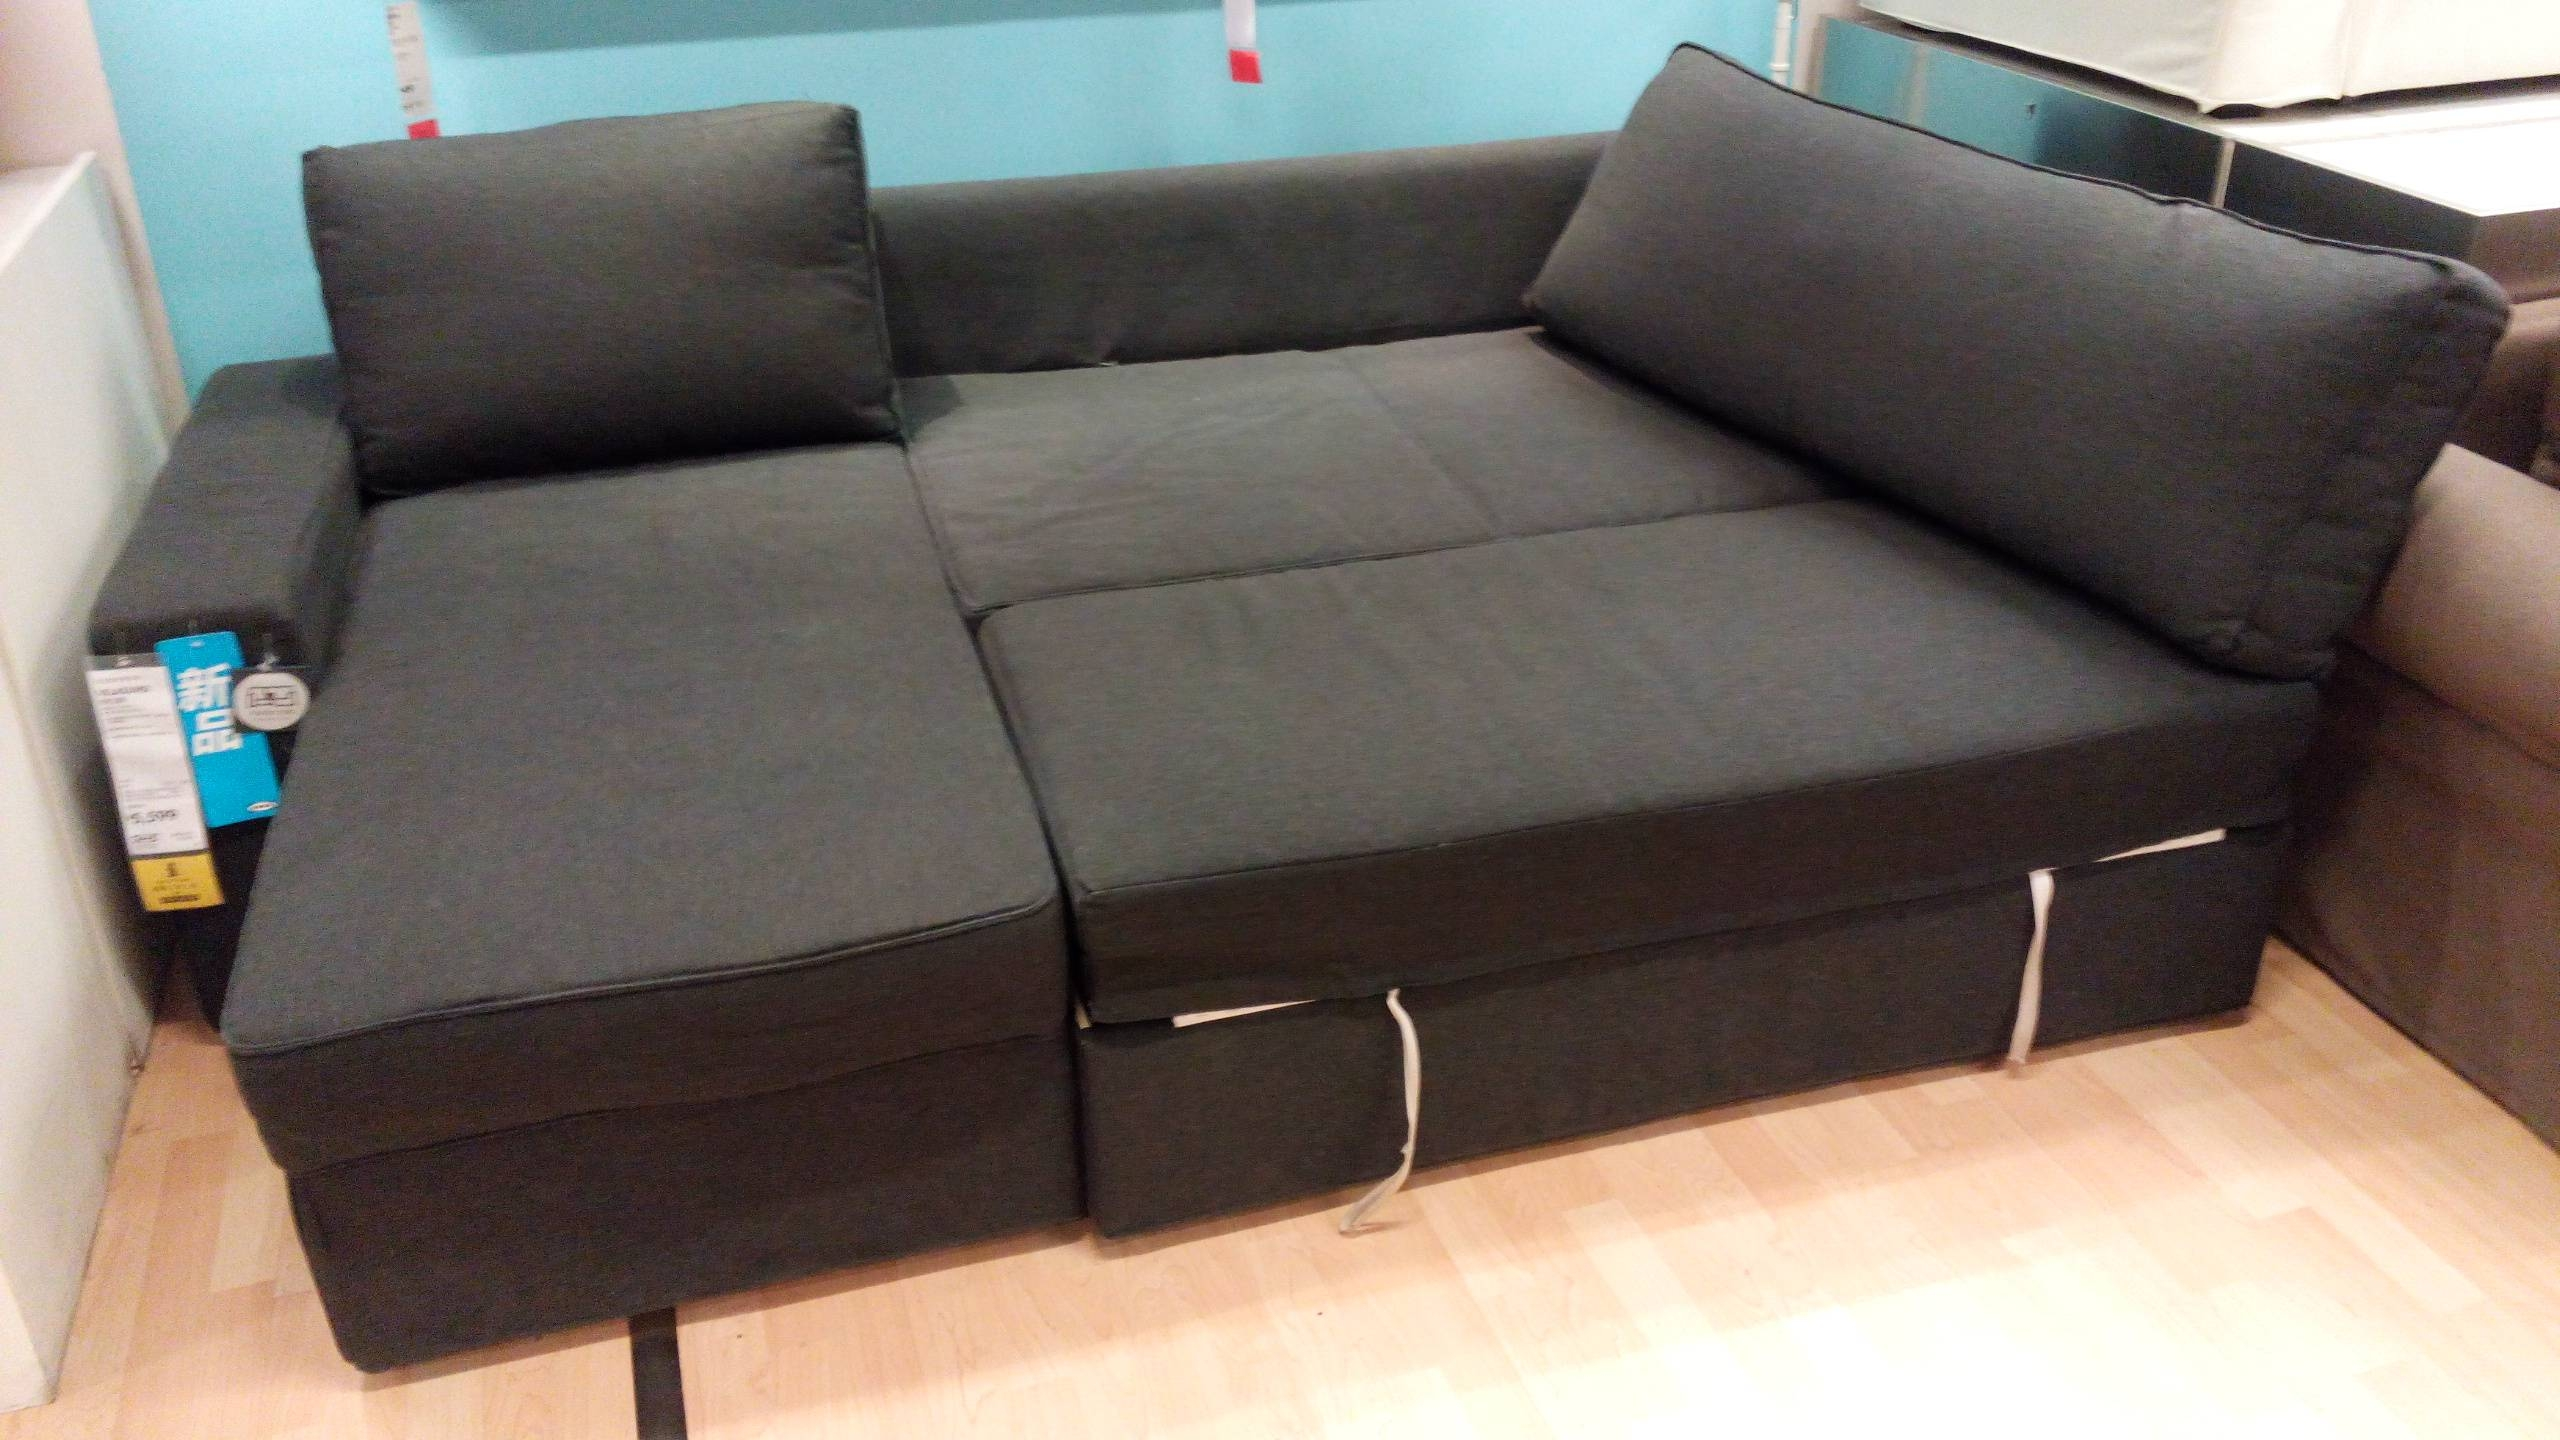 ▻ Sofa : 39 Ikea Friheten Corner Sofa Bed With Storage Dark Grey for Ikea Sofa Storage (Image 25 of 25)